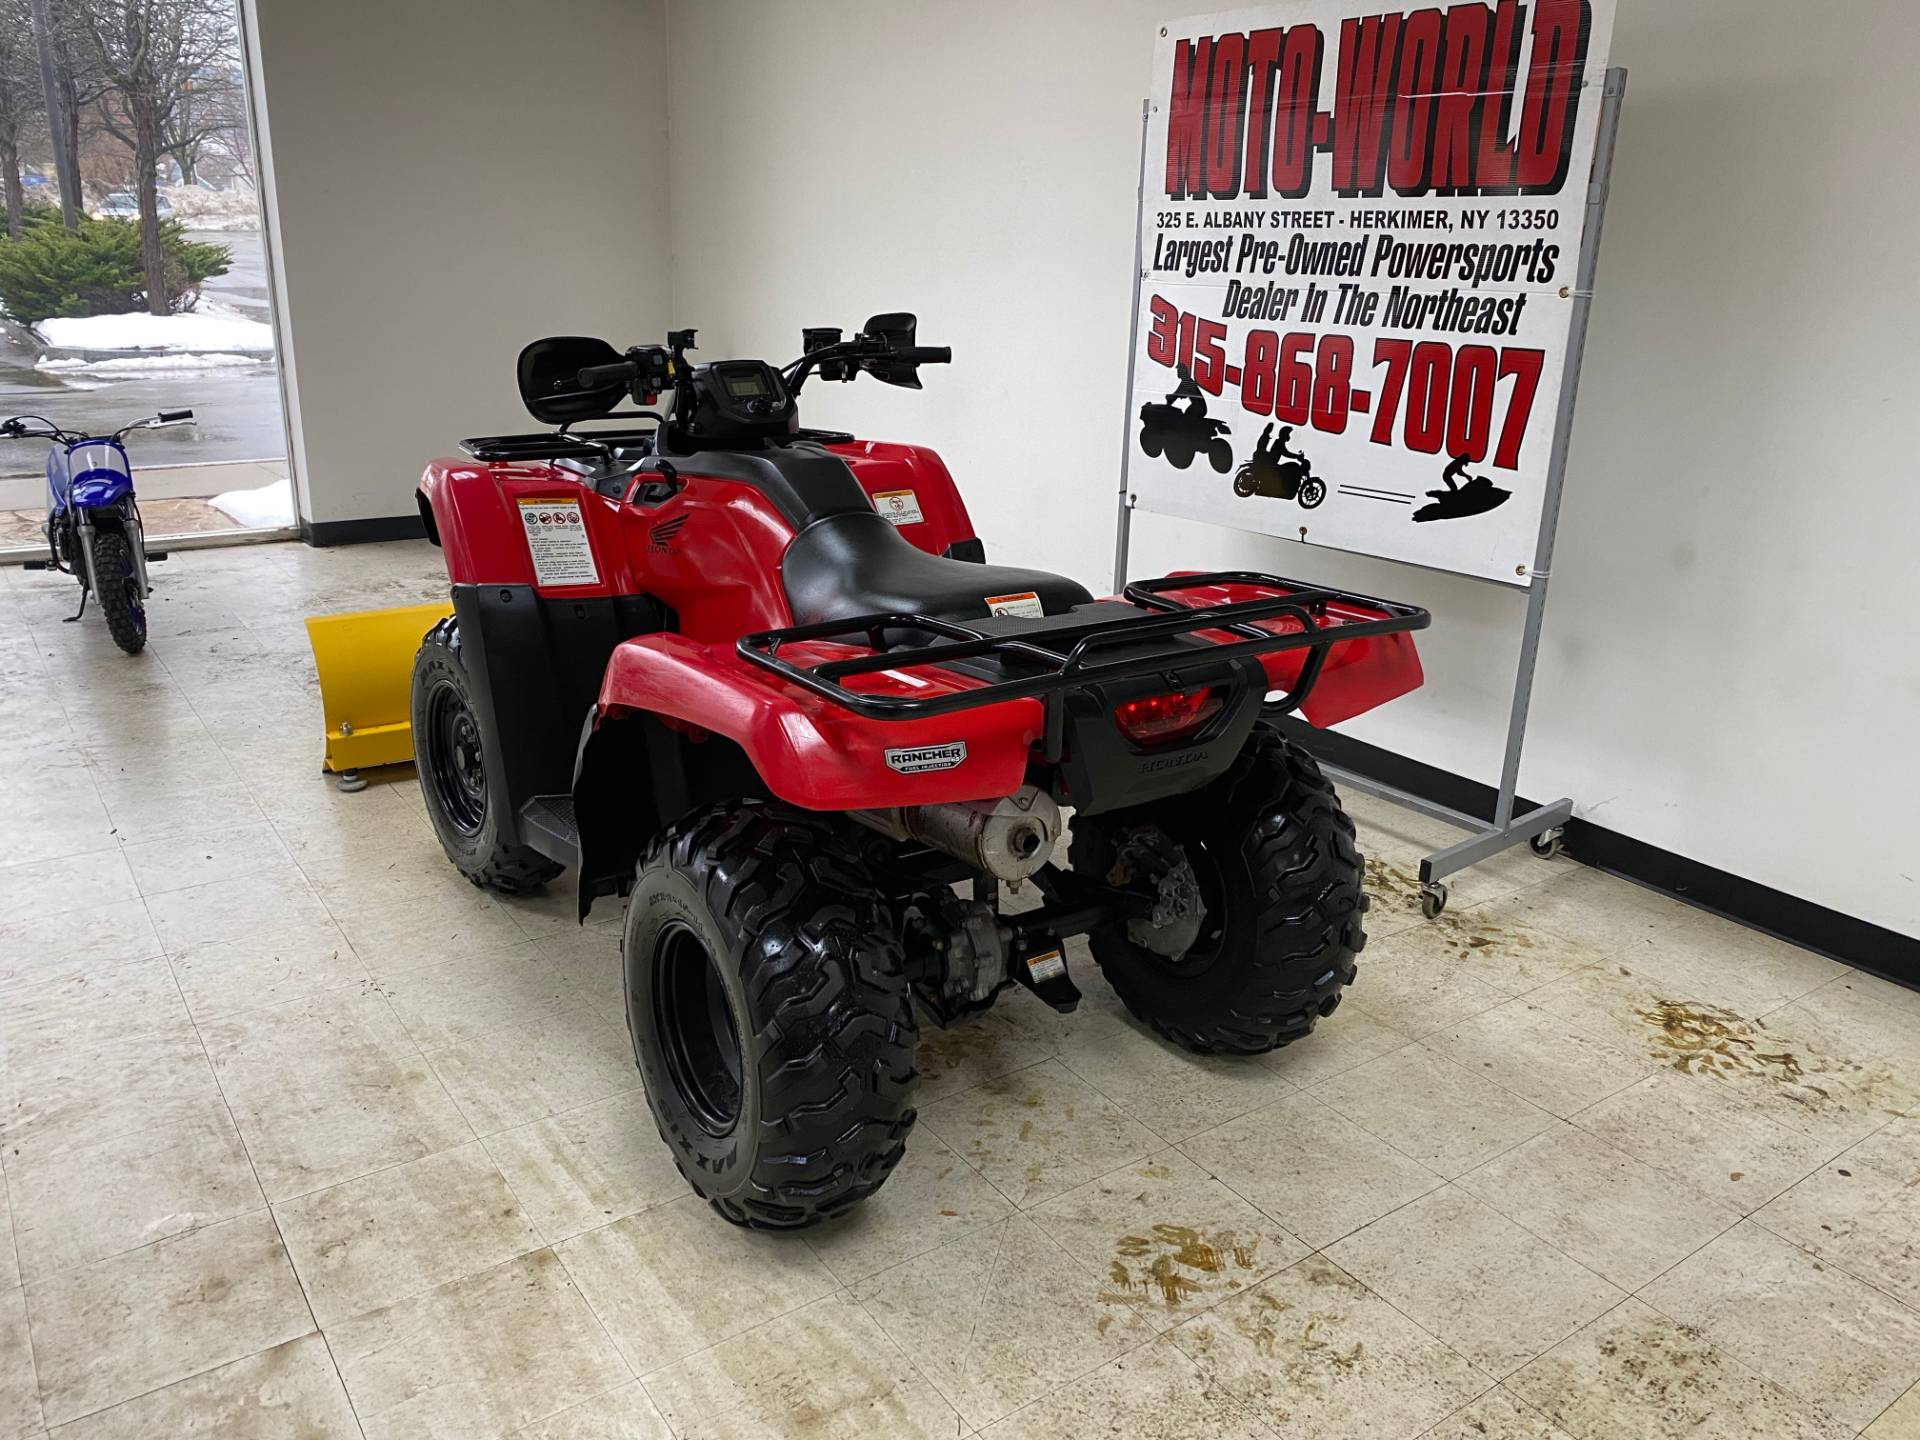 2016 Honda FourTrax Rancher 4x4 ES in Herkimer, New York - Photo 4